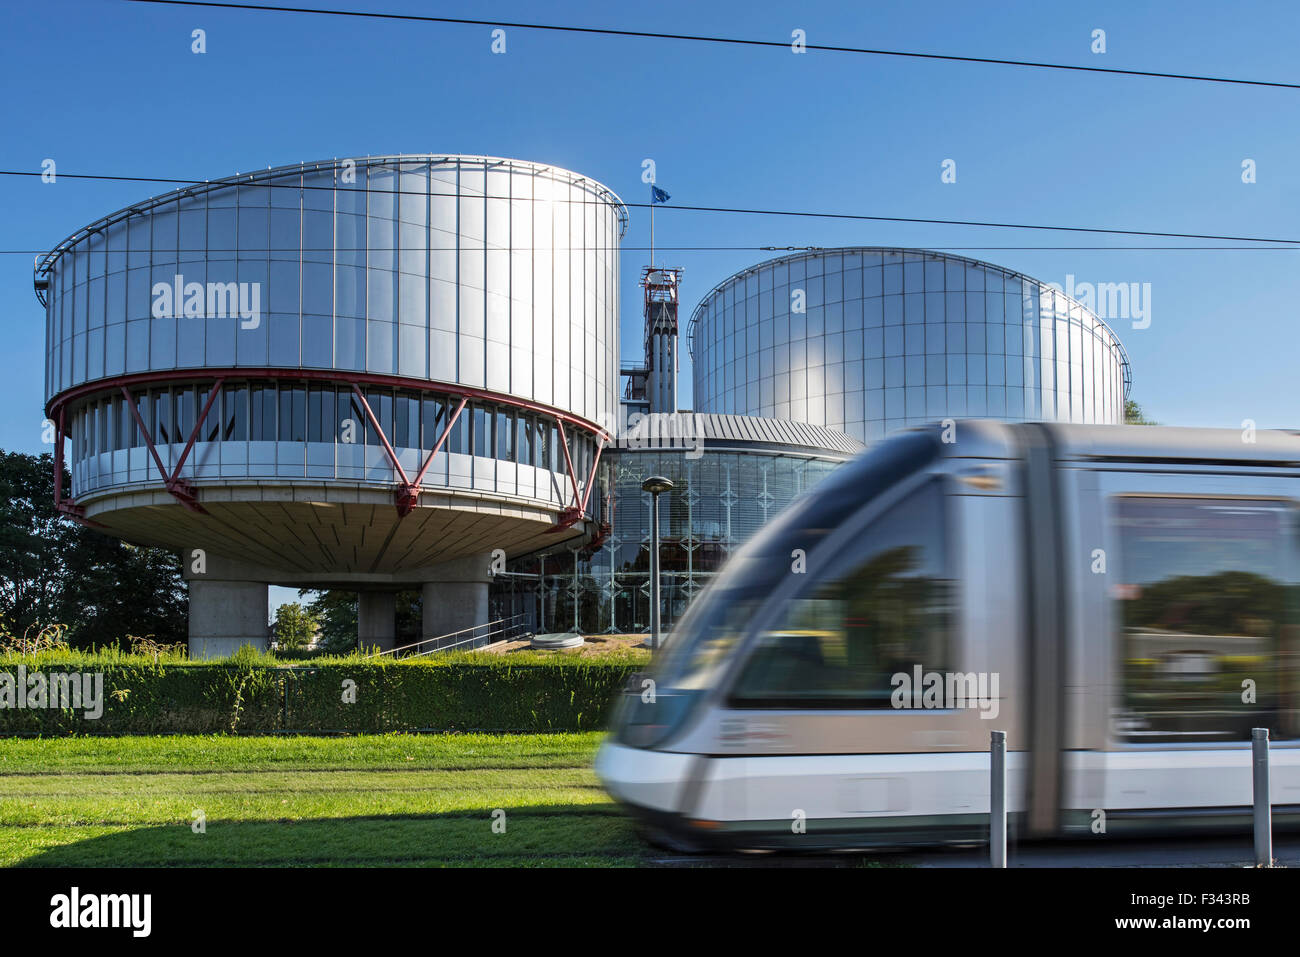 Tram in front of the building of the European Court of Human Rights / ECtHR at Strasbourg, France - Stock Image